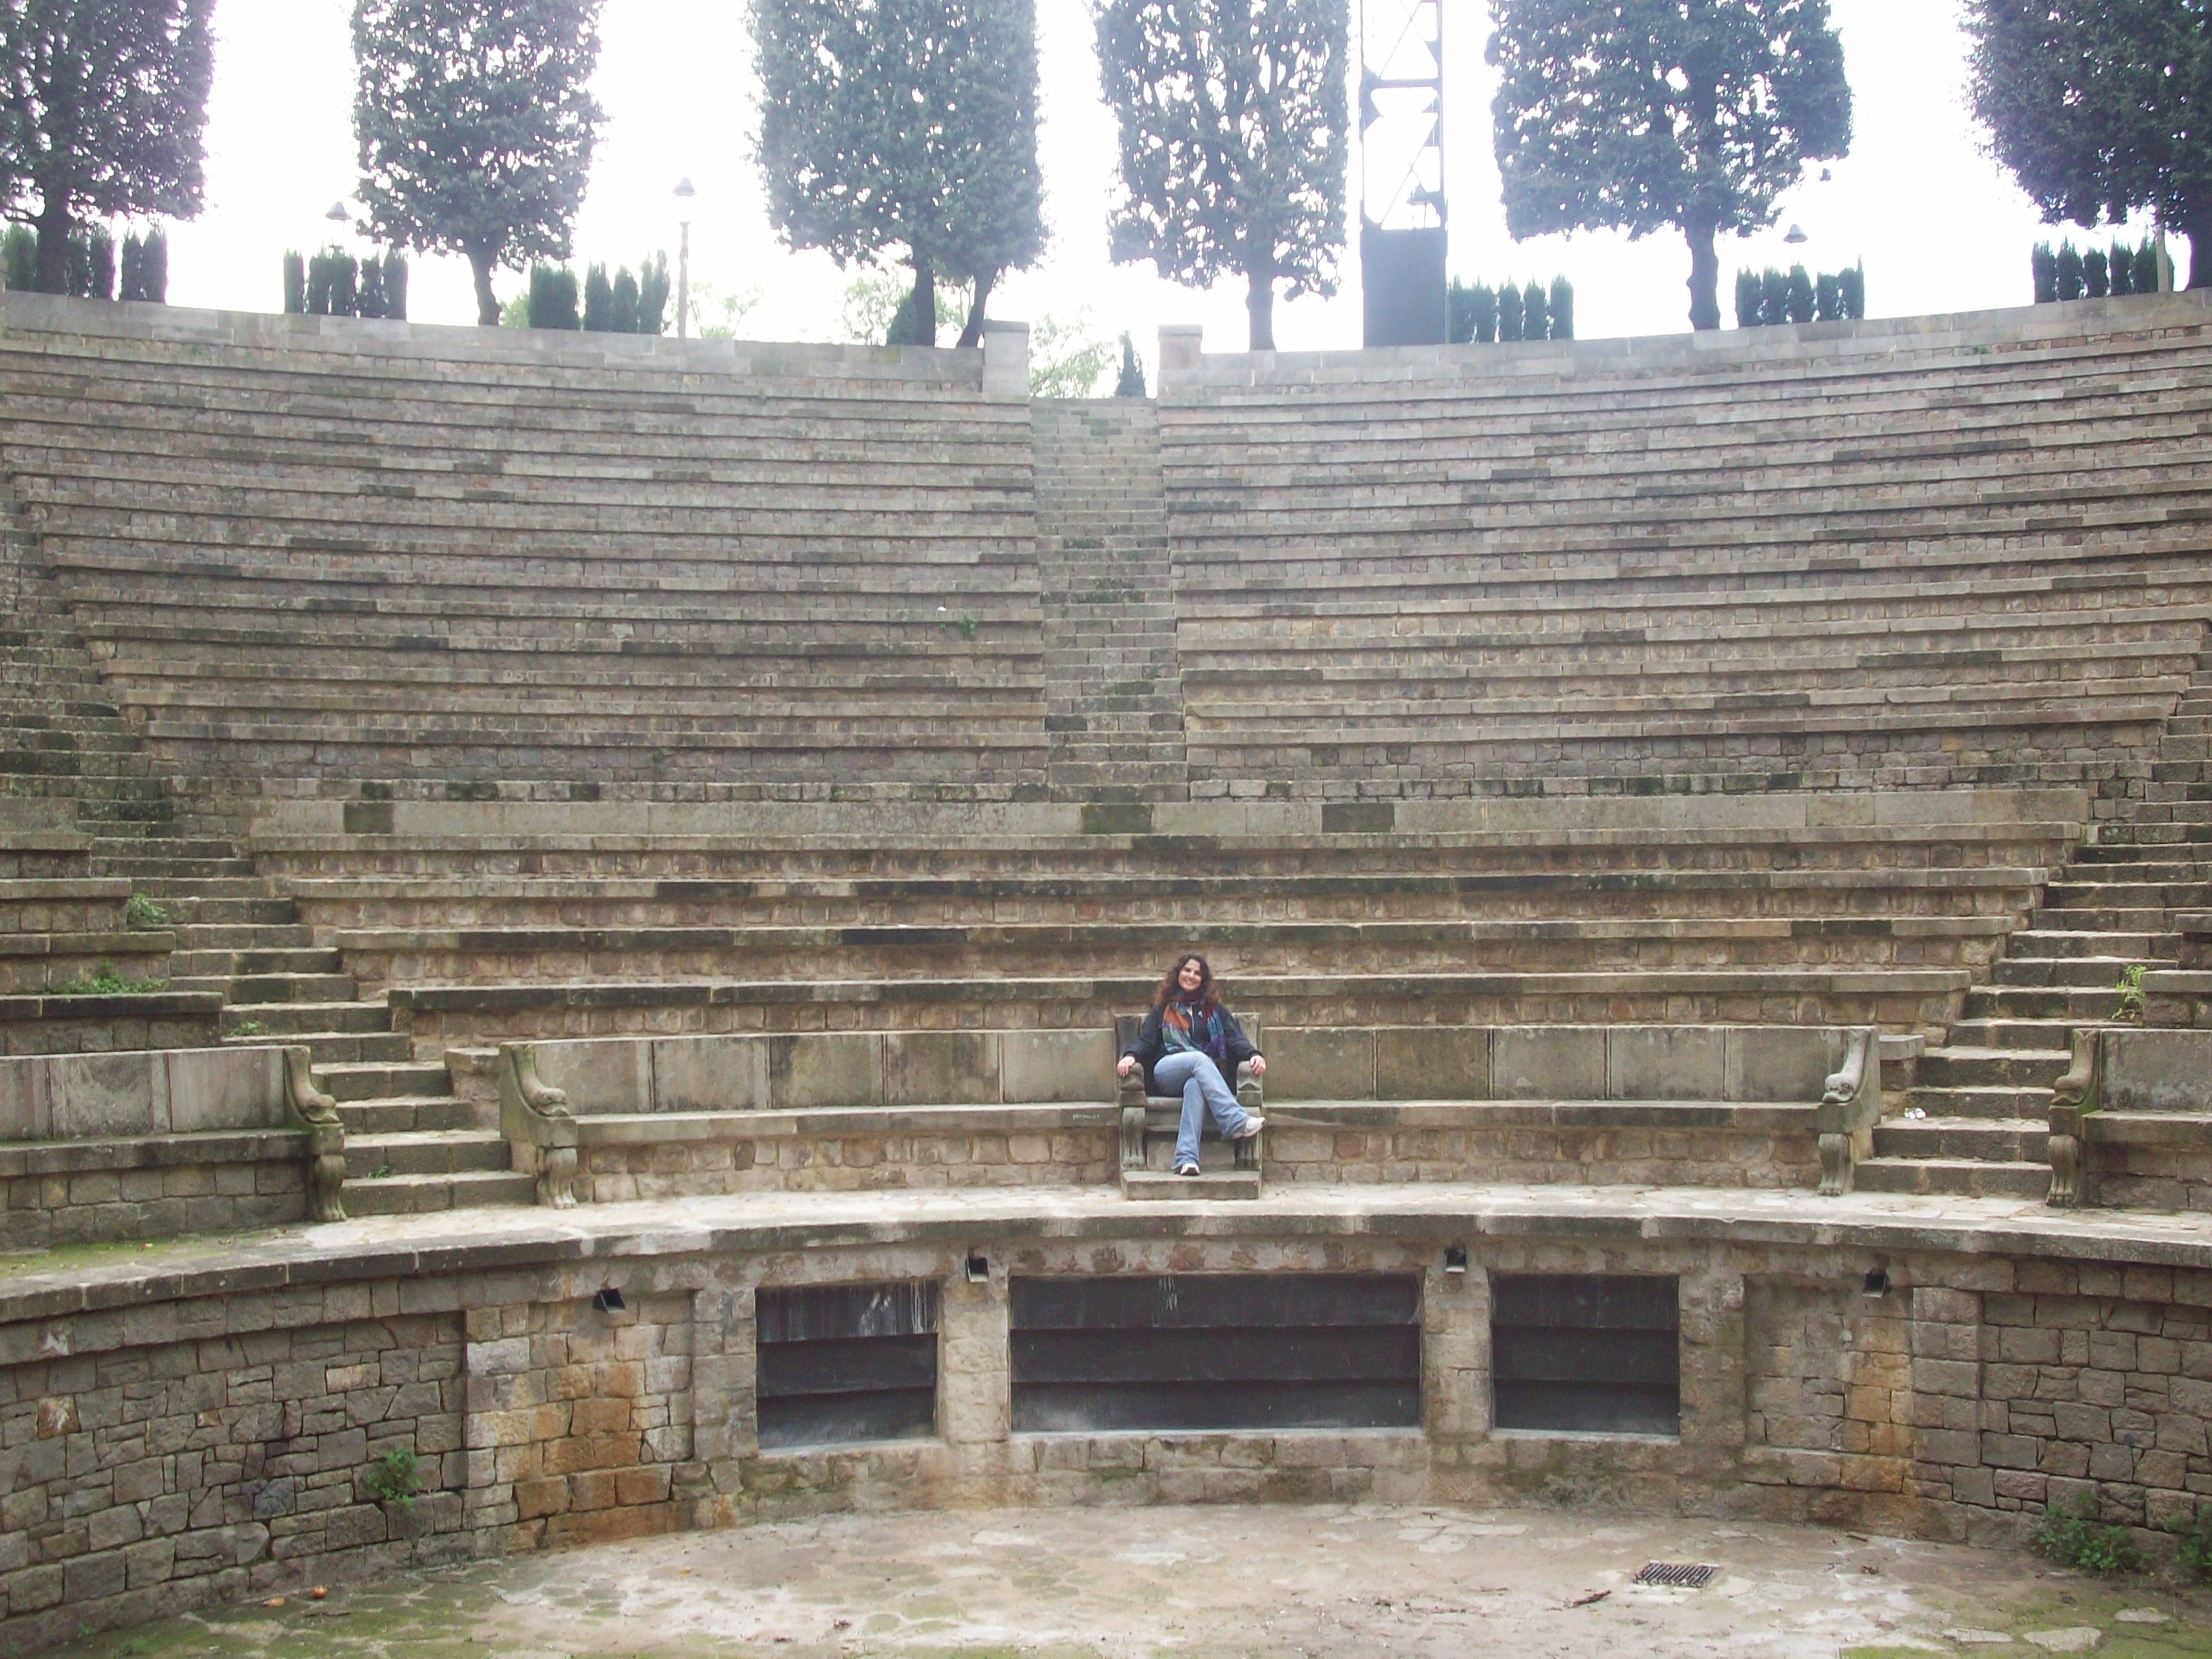 Greek Theater - Montjuic